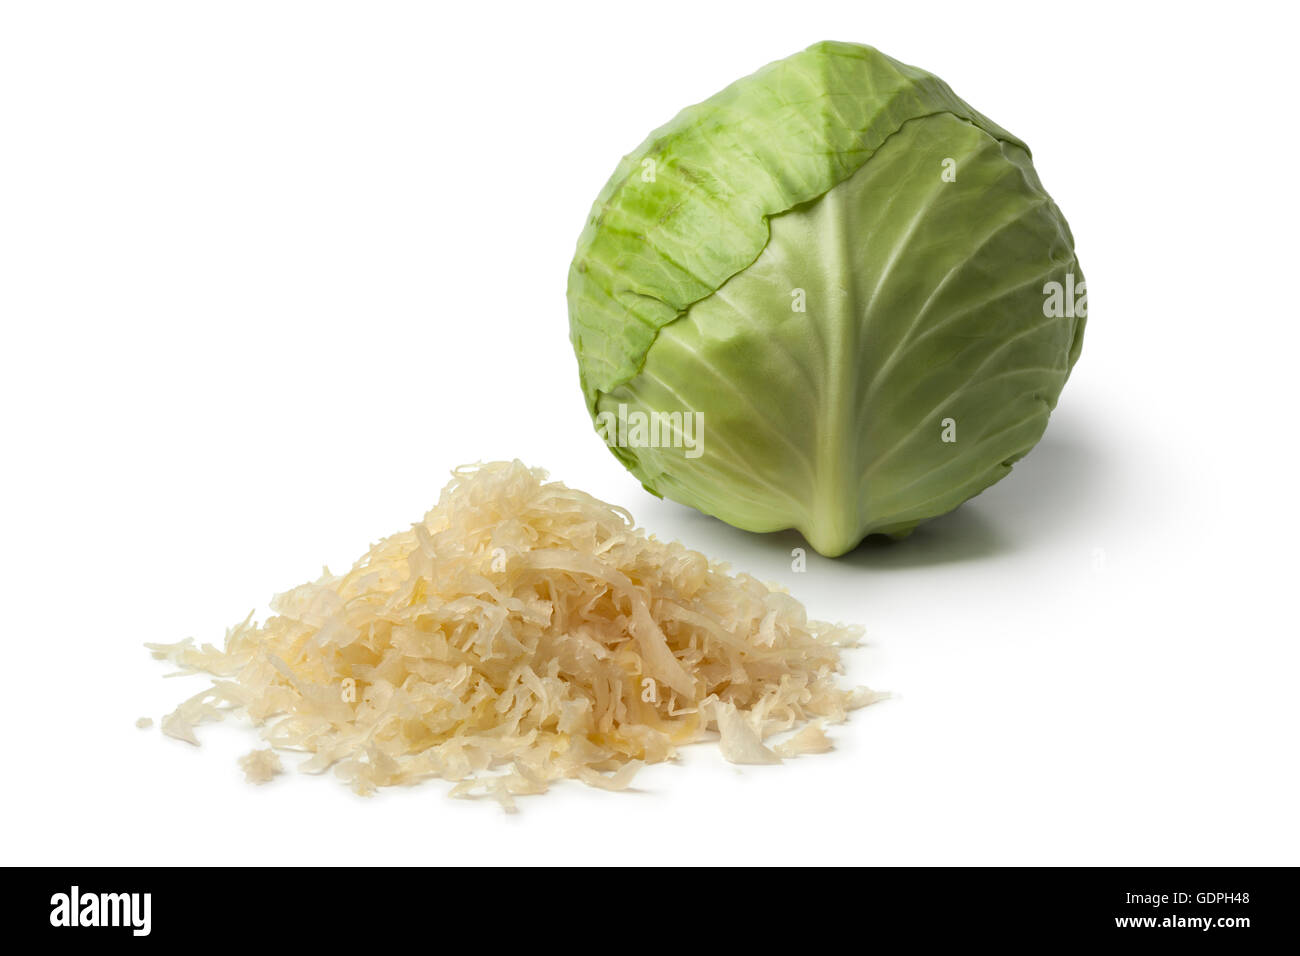 Fresh white cabbage and a heap of preserved sauerkraut on white background - Stock Image